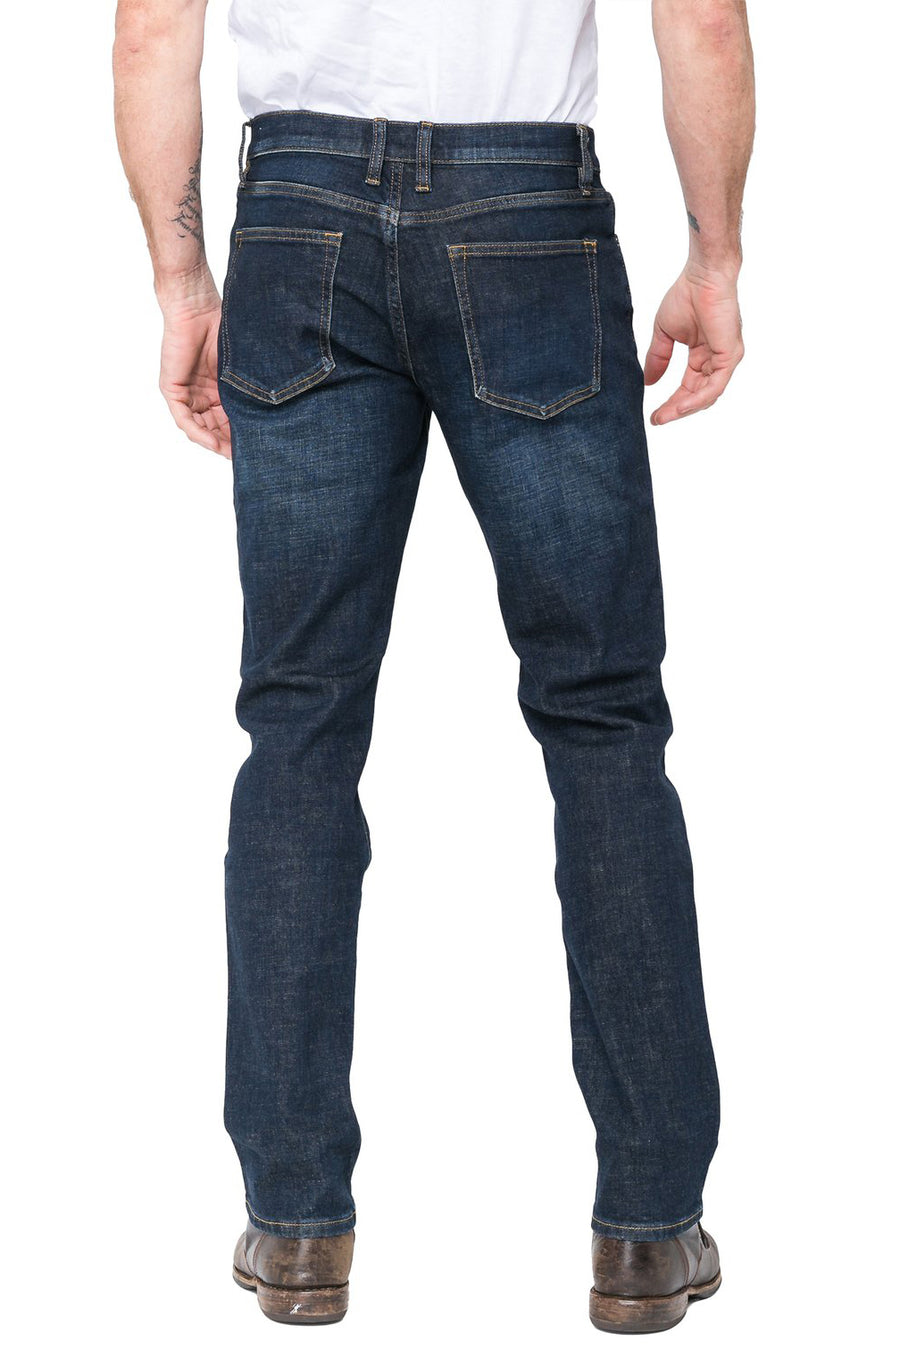 Roxbury Slim - 6 Month Deep Blue Worn - Pavilion